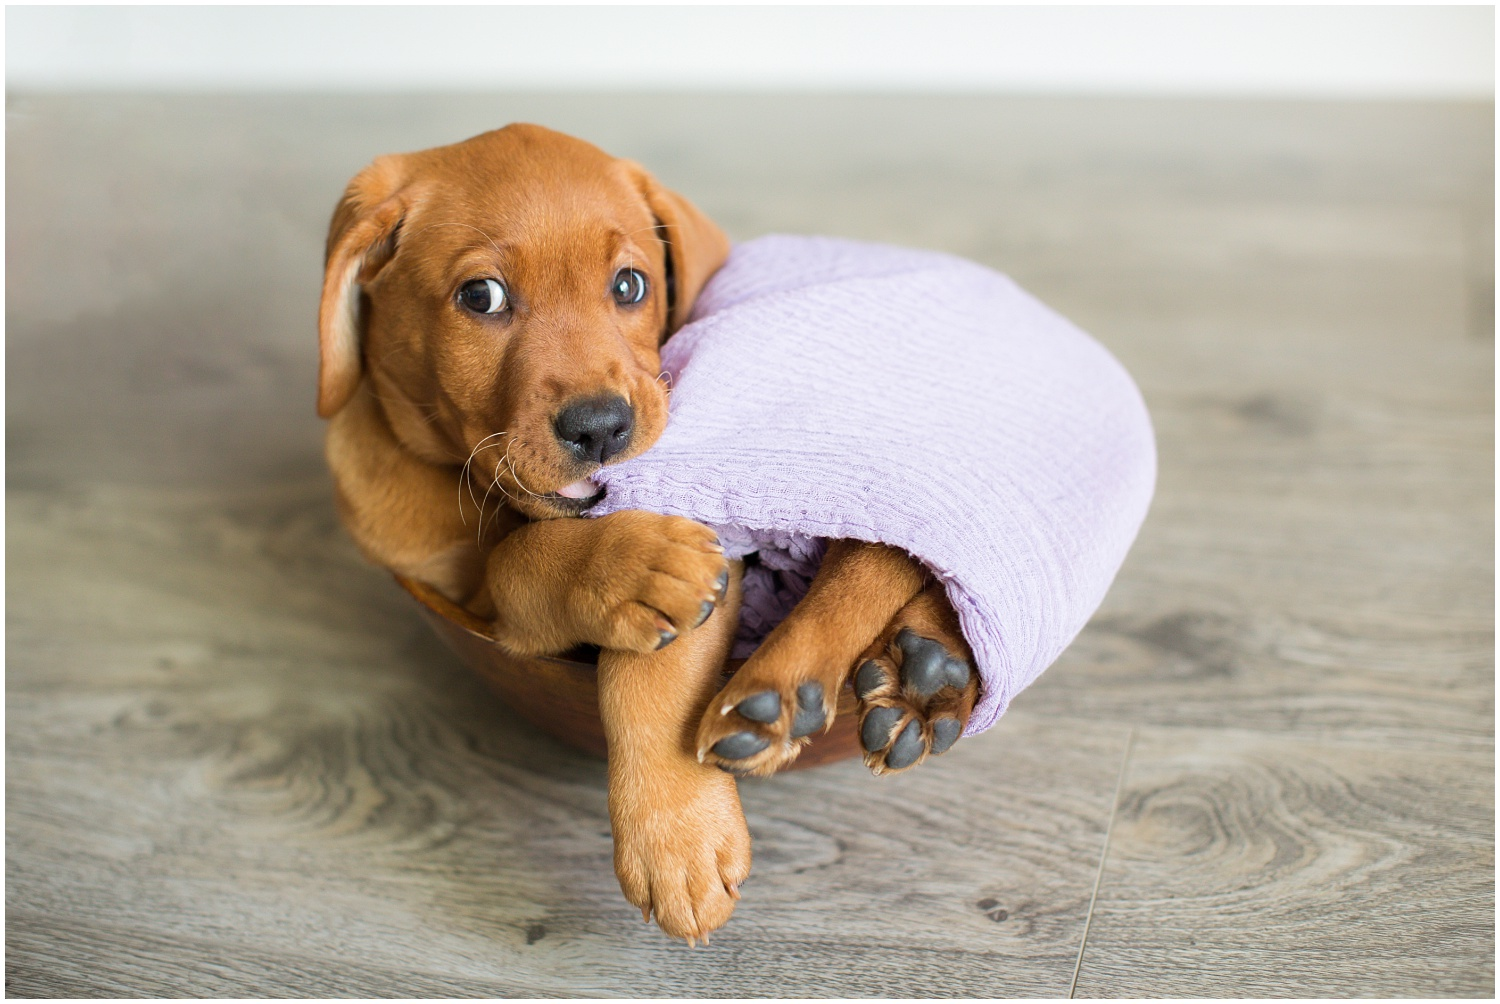 Amazing Day Photography - Puppy Newborn Session - Lifestyle Newborn Session - Dog Photographer (2).jpg